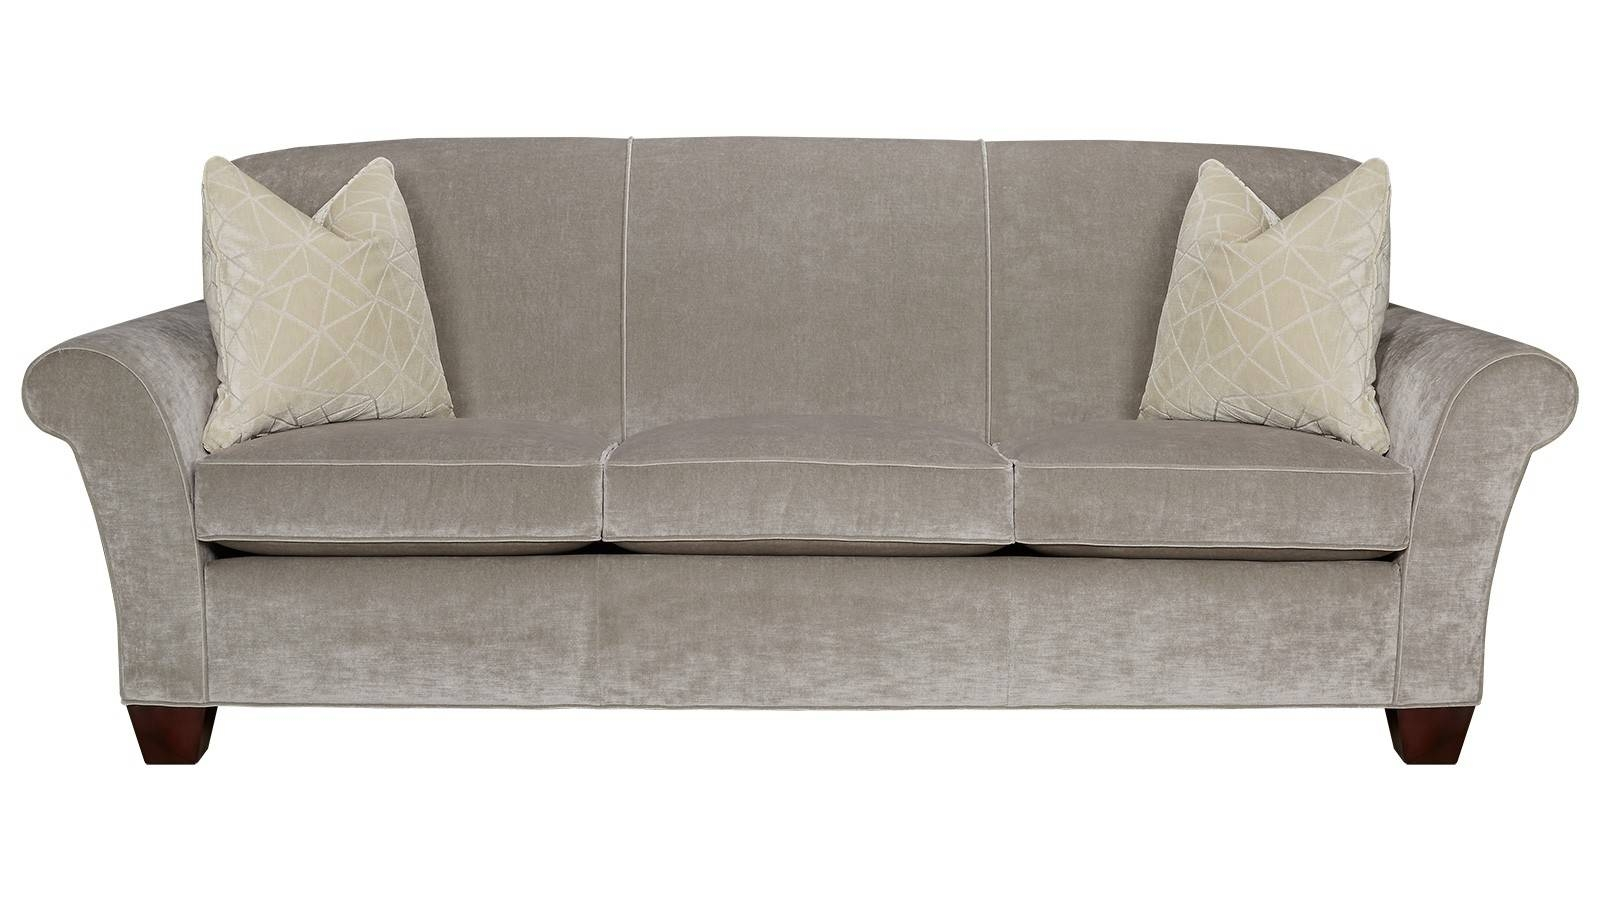 Sofas Center : L Tight Back English Roll Arm Sofas Armchairs Basel within Tight Back Sectional Sofas (Image 9 of 15)